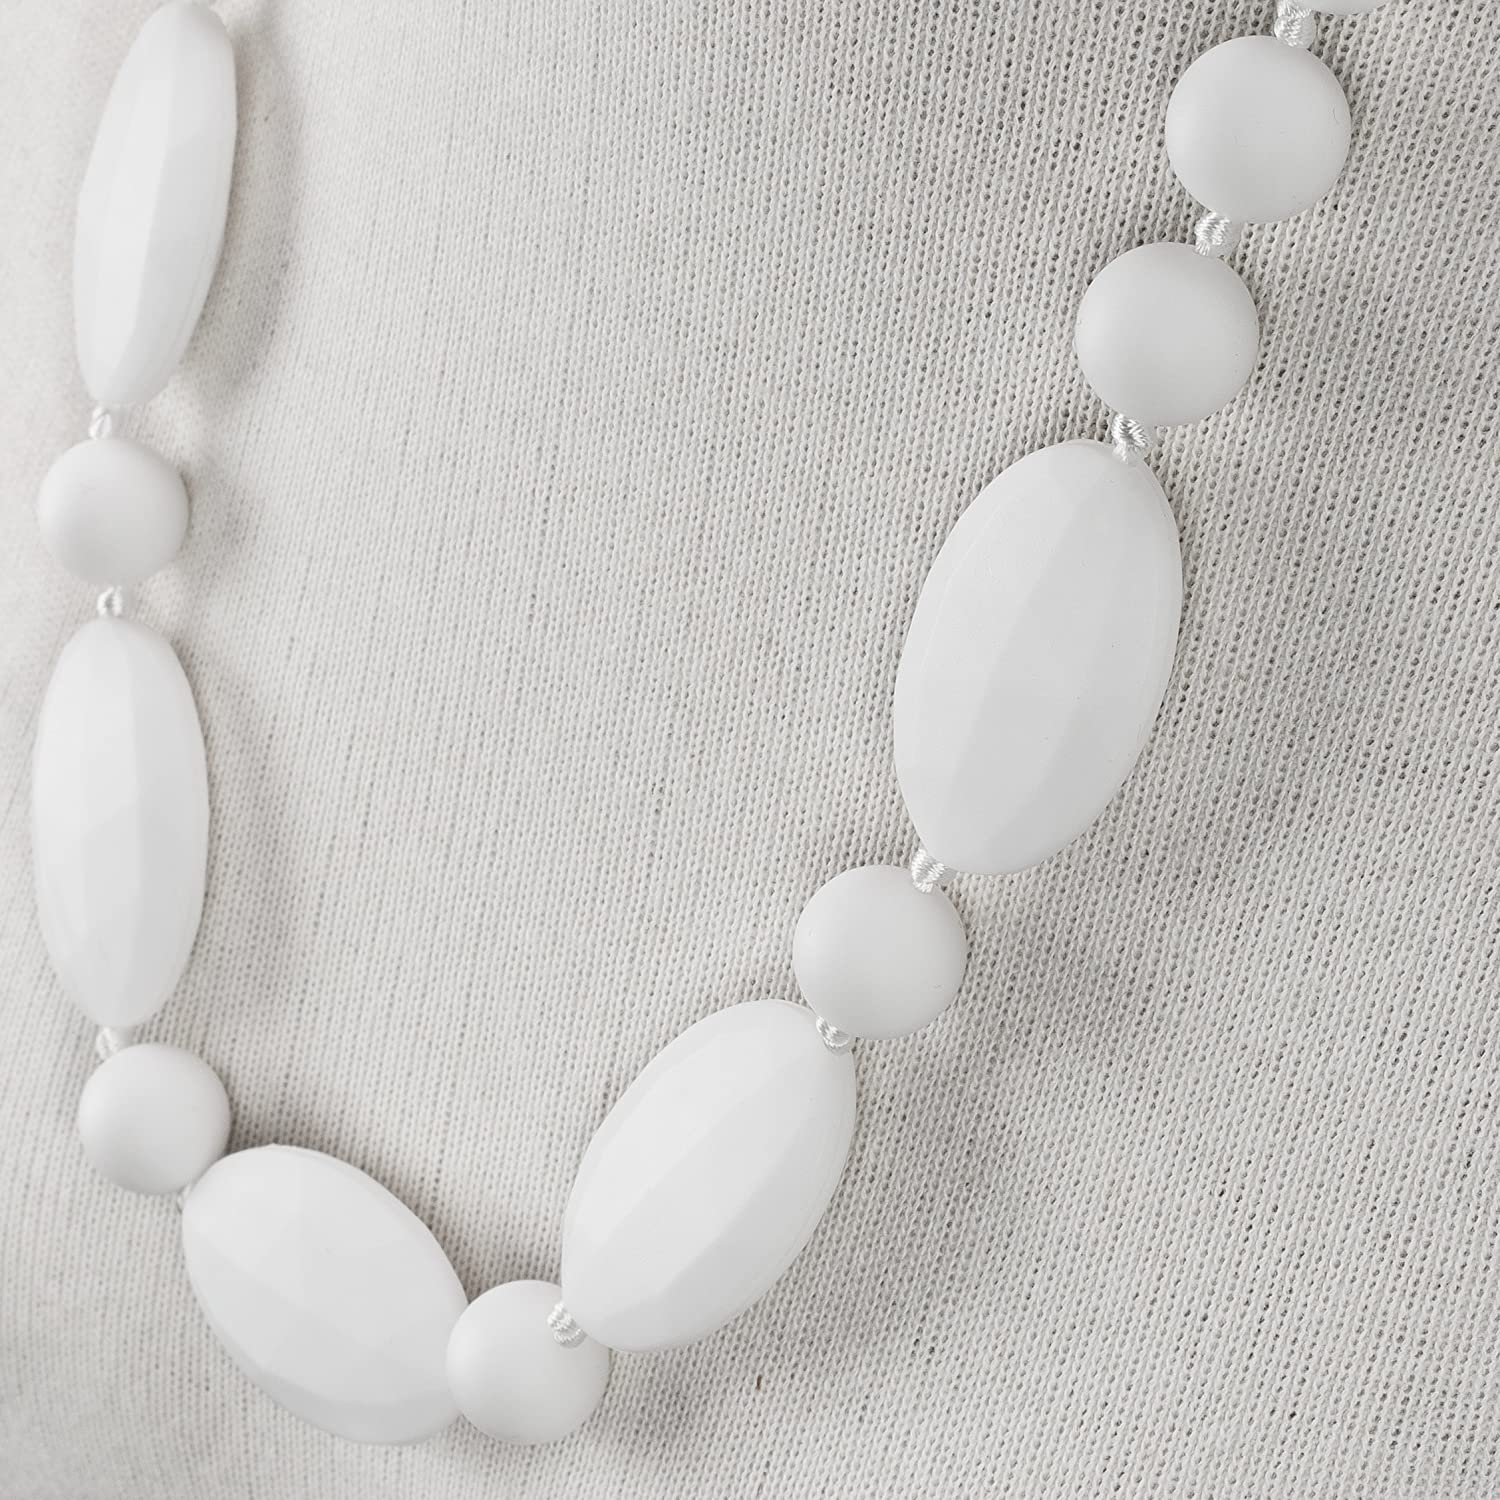 Baby Teething Necklace for Mom by Wear Tough White Pearl